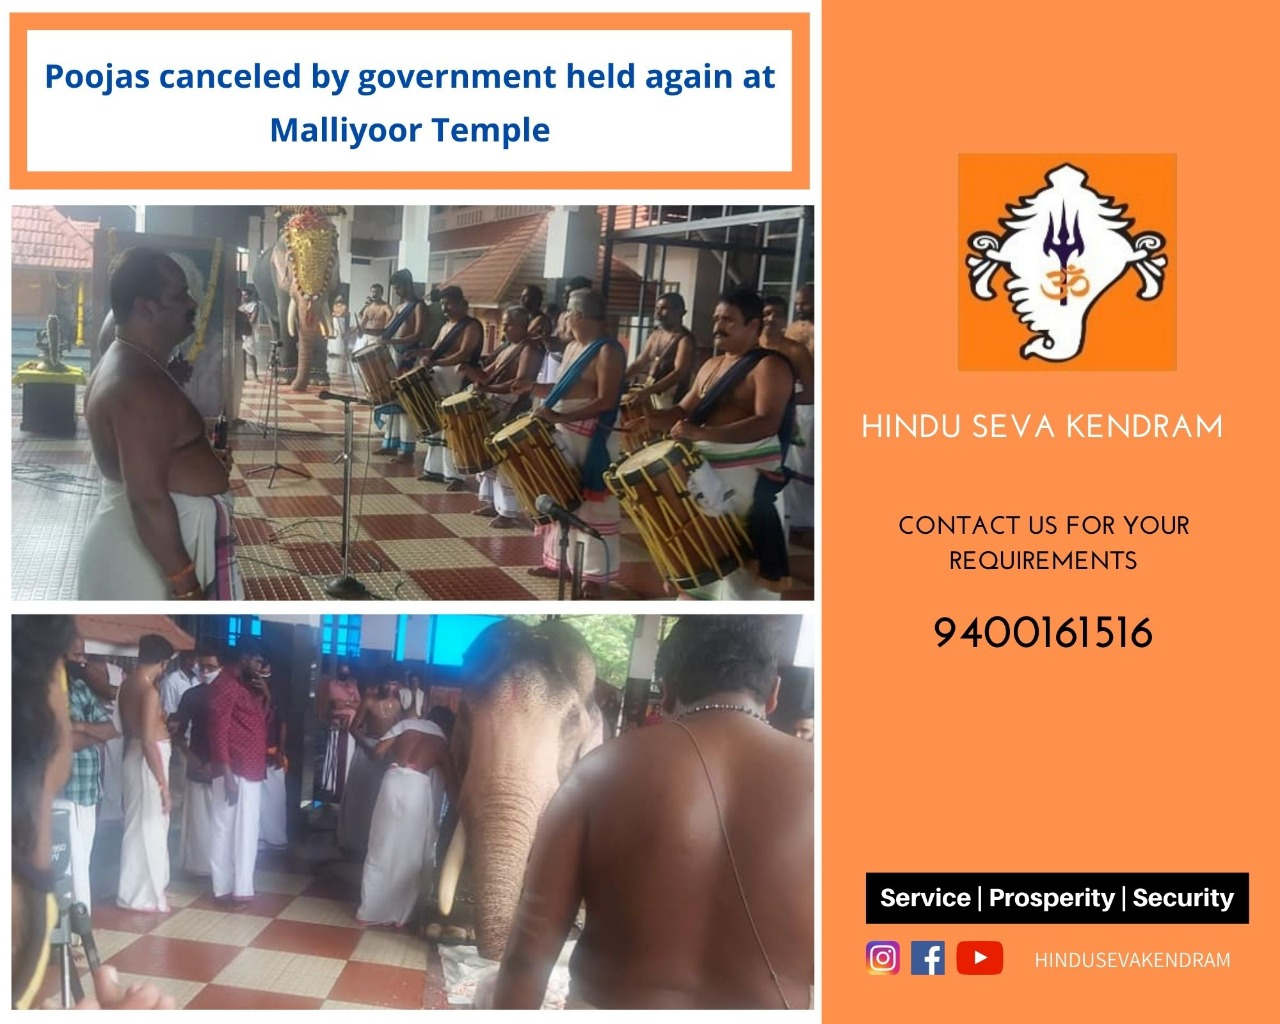 Poojas canceled by government held again at Malliyoor Temple